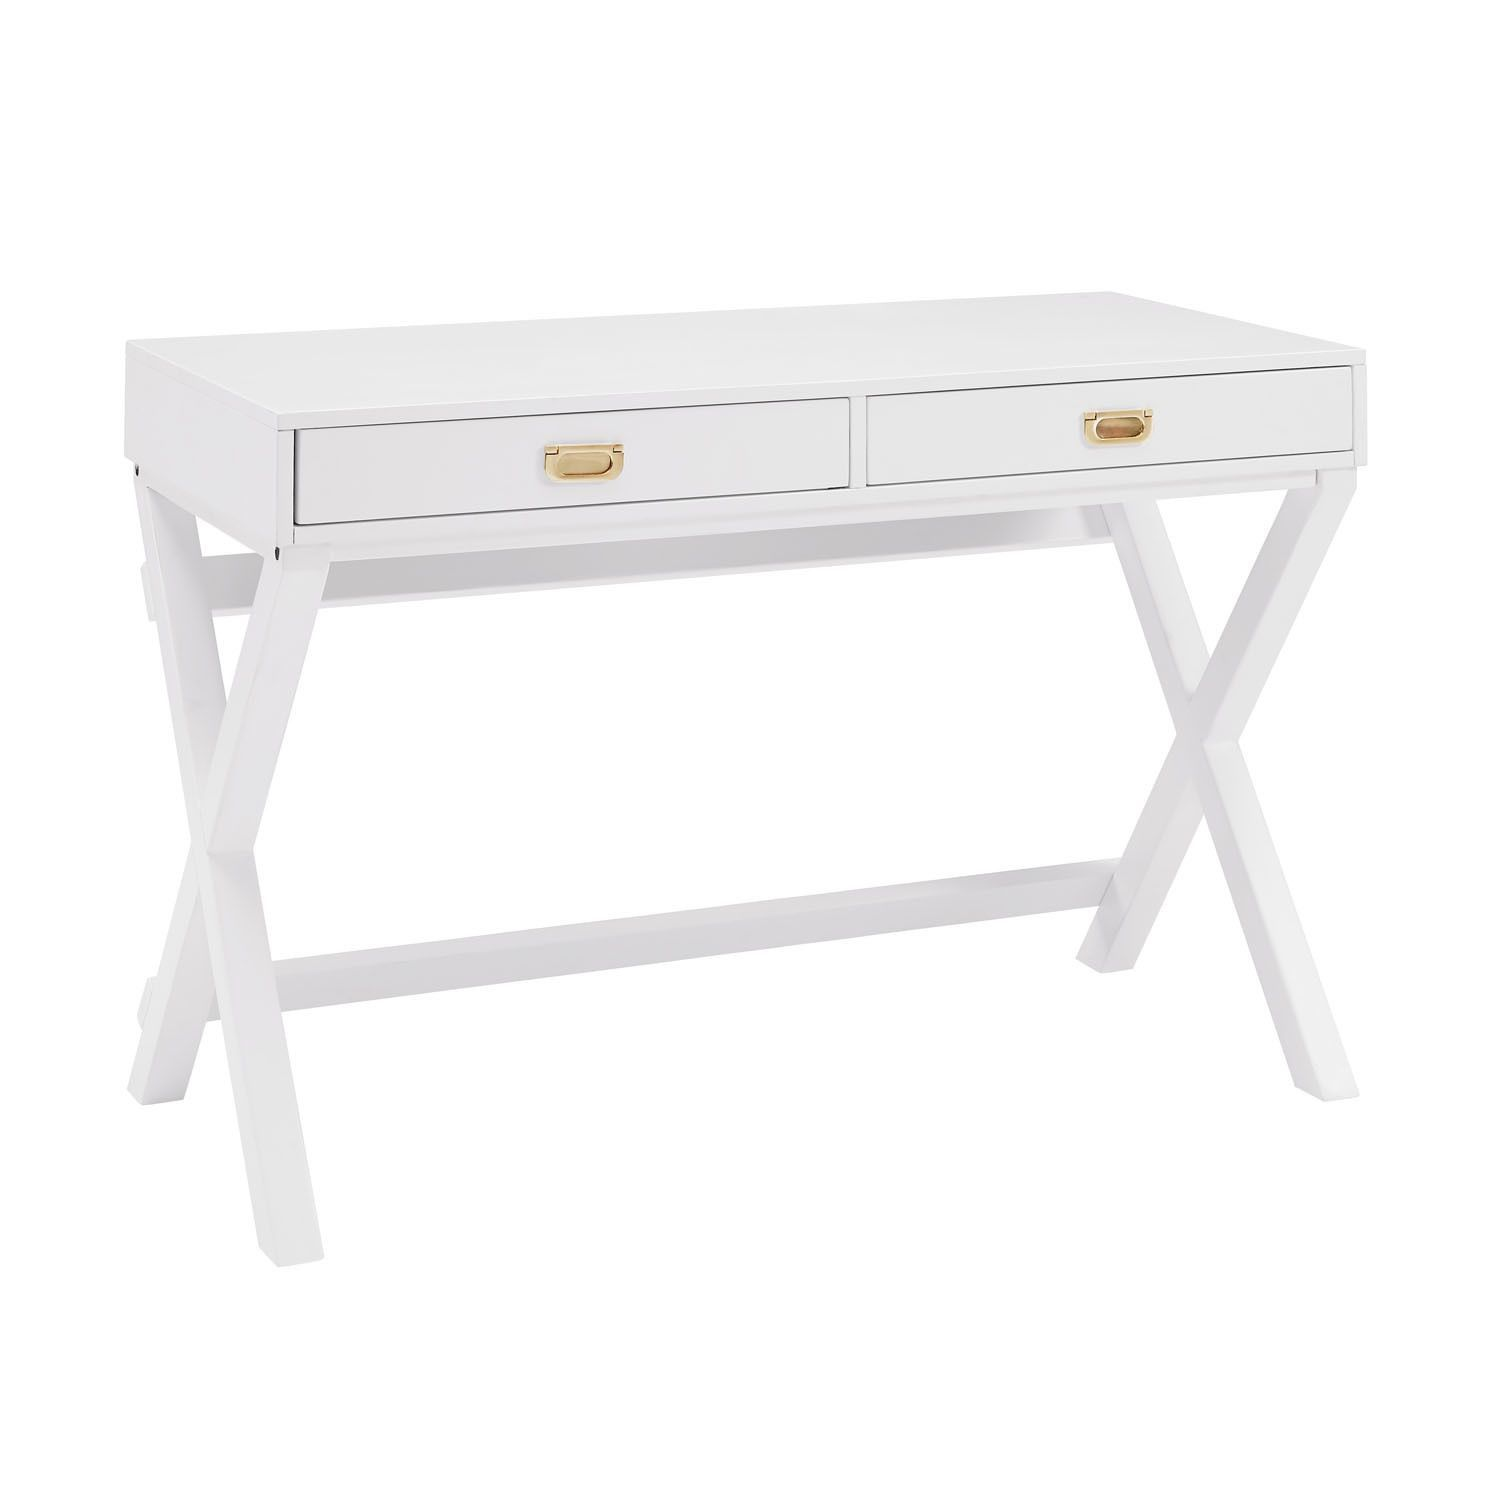 Poppy White Writing Desk White Writing Desk Wooden Writing Desk